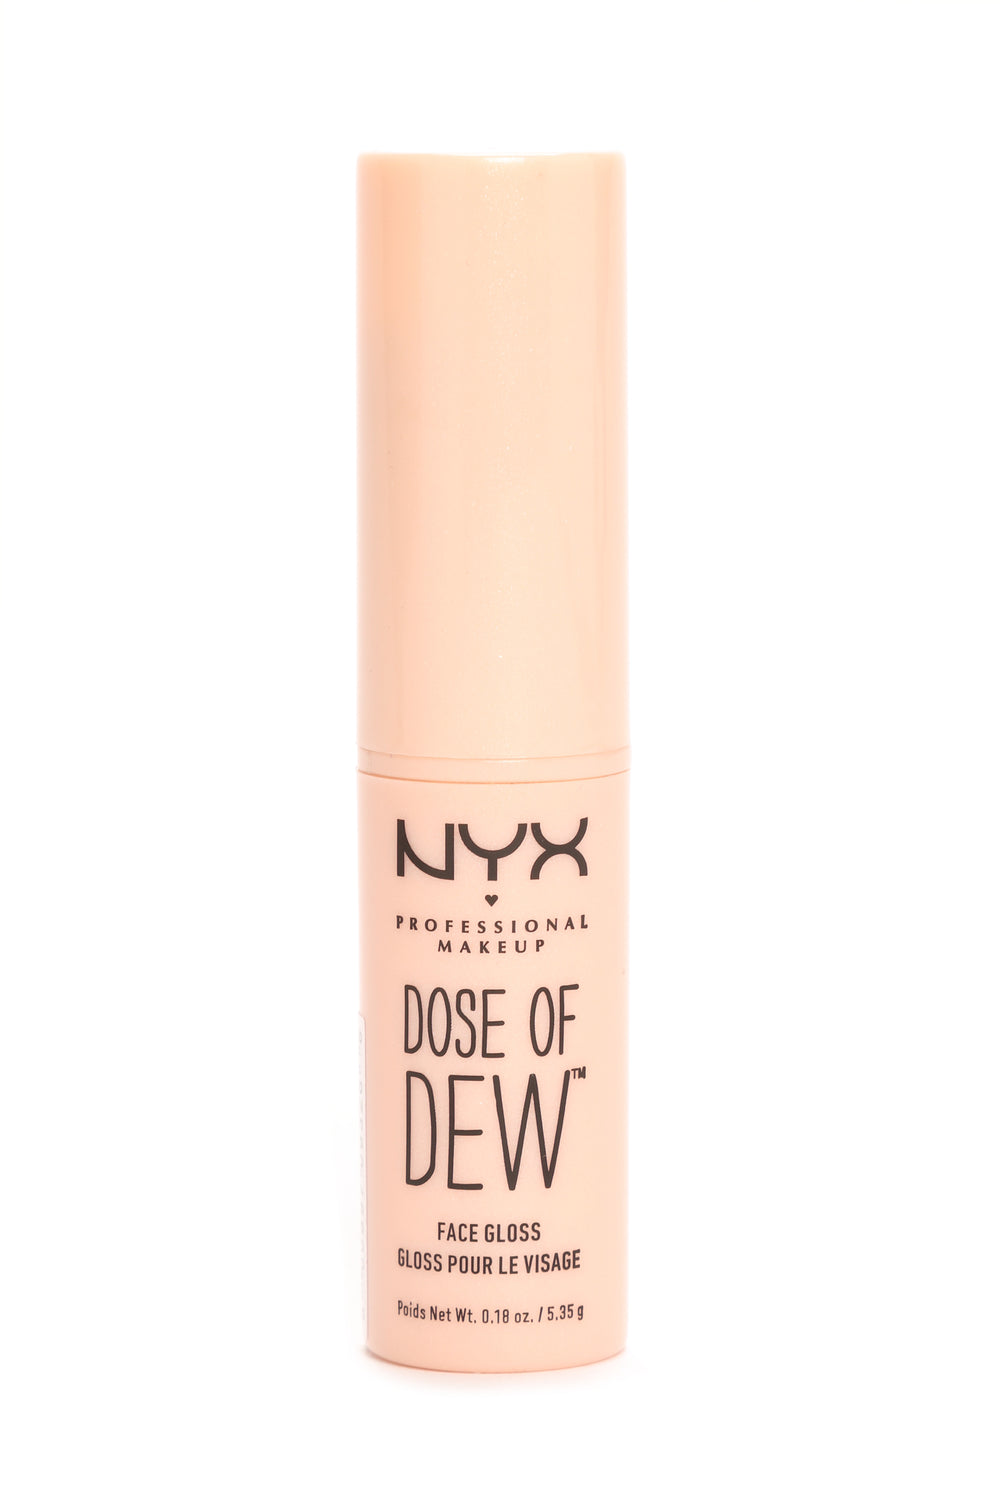 NYX Dose Of Dew Face Gloss - Nude